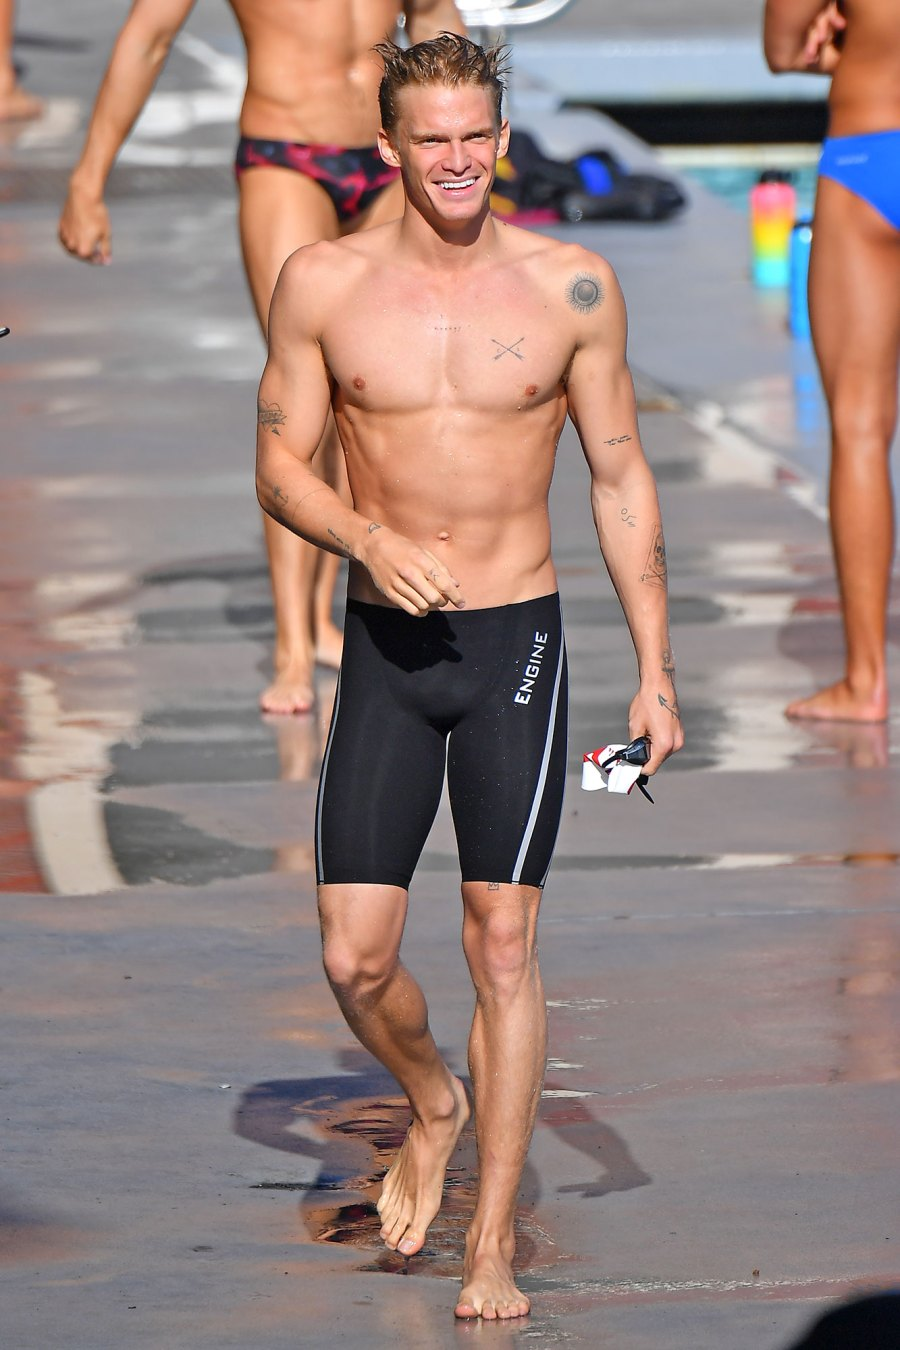 Hottest Celebrity Men at the Beach in Swim Trunks, Shirtless